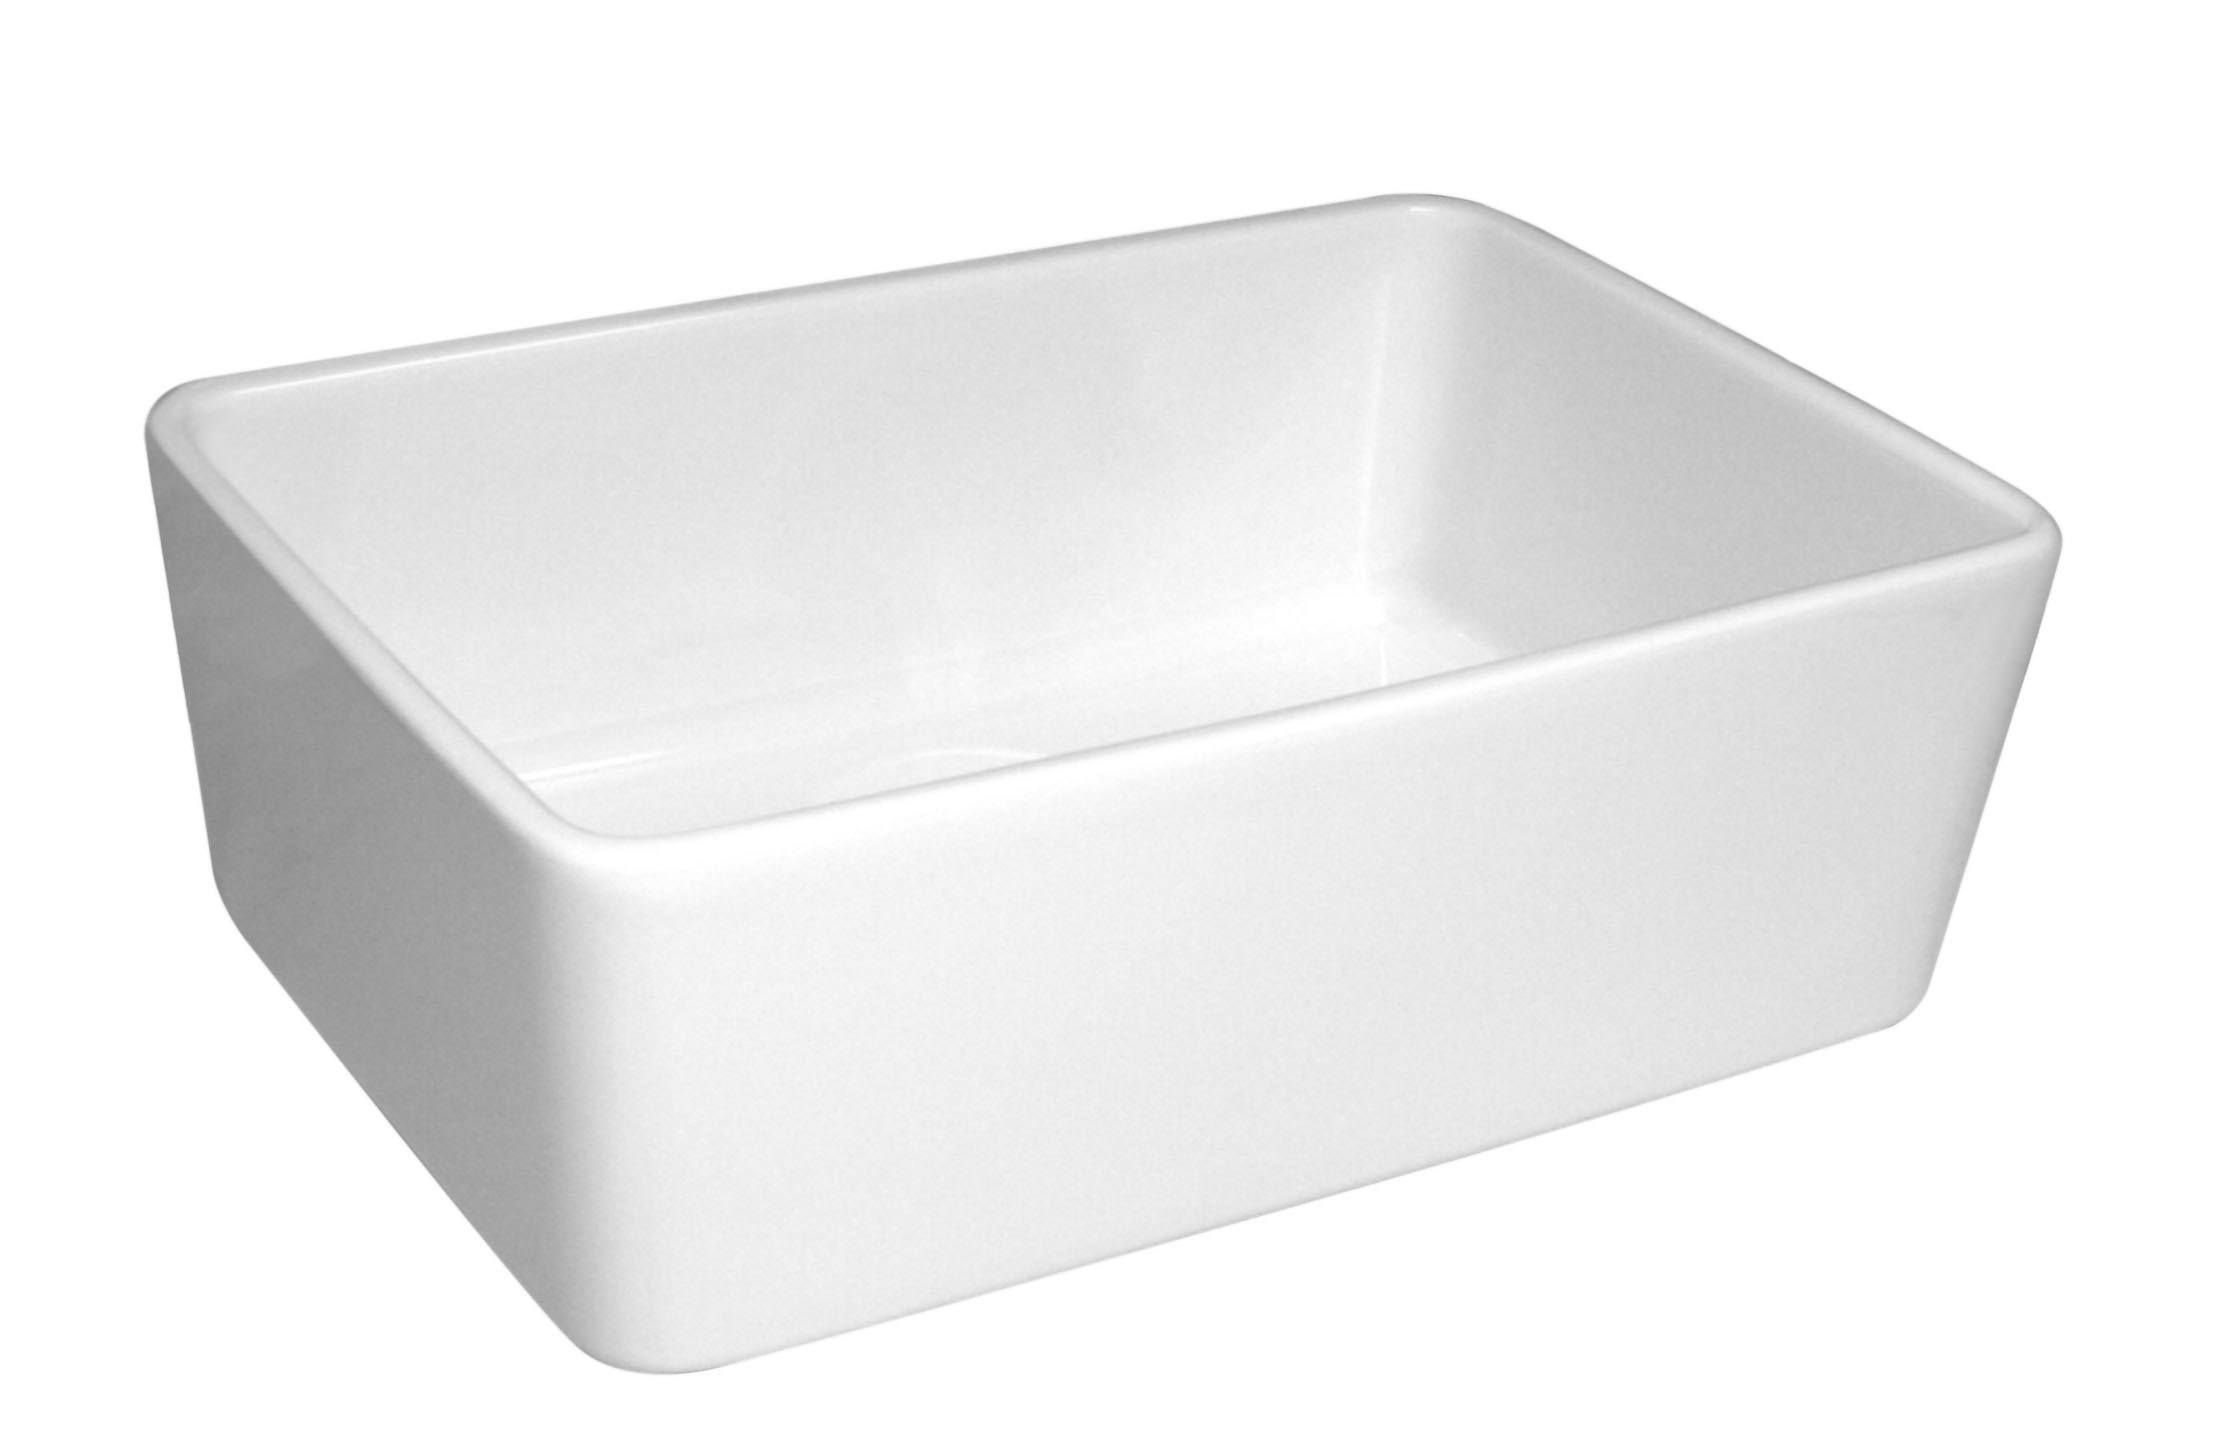 ... Basichaus 23.5 Inch Single Bowl Fireclay Sink w/ a Smooth Front Apron